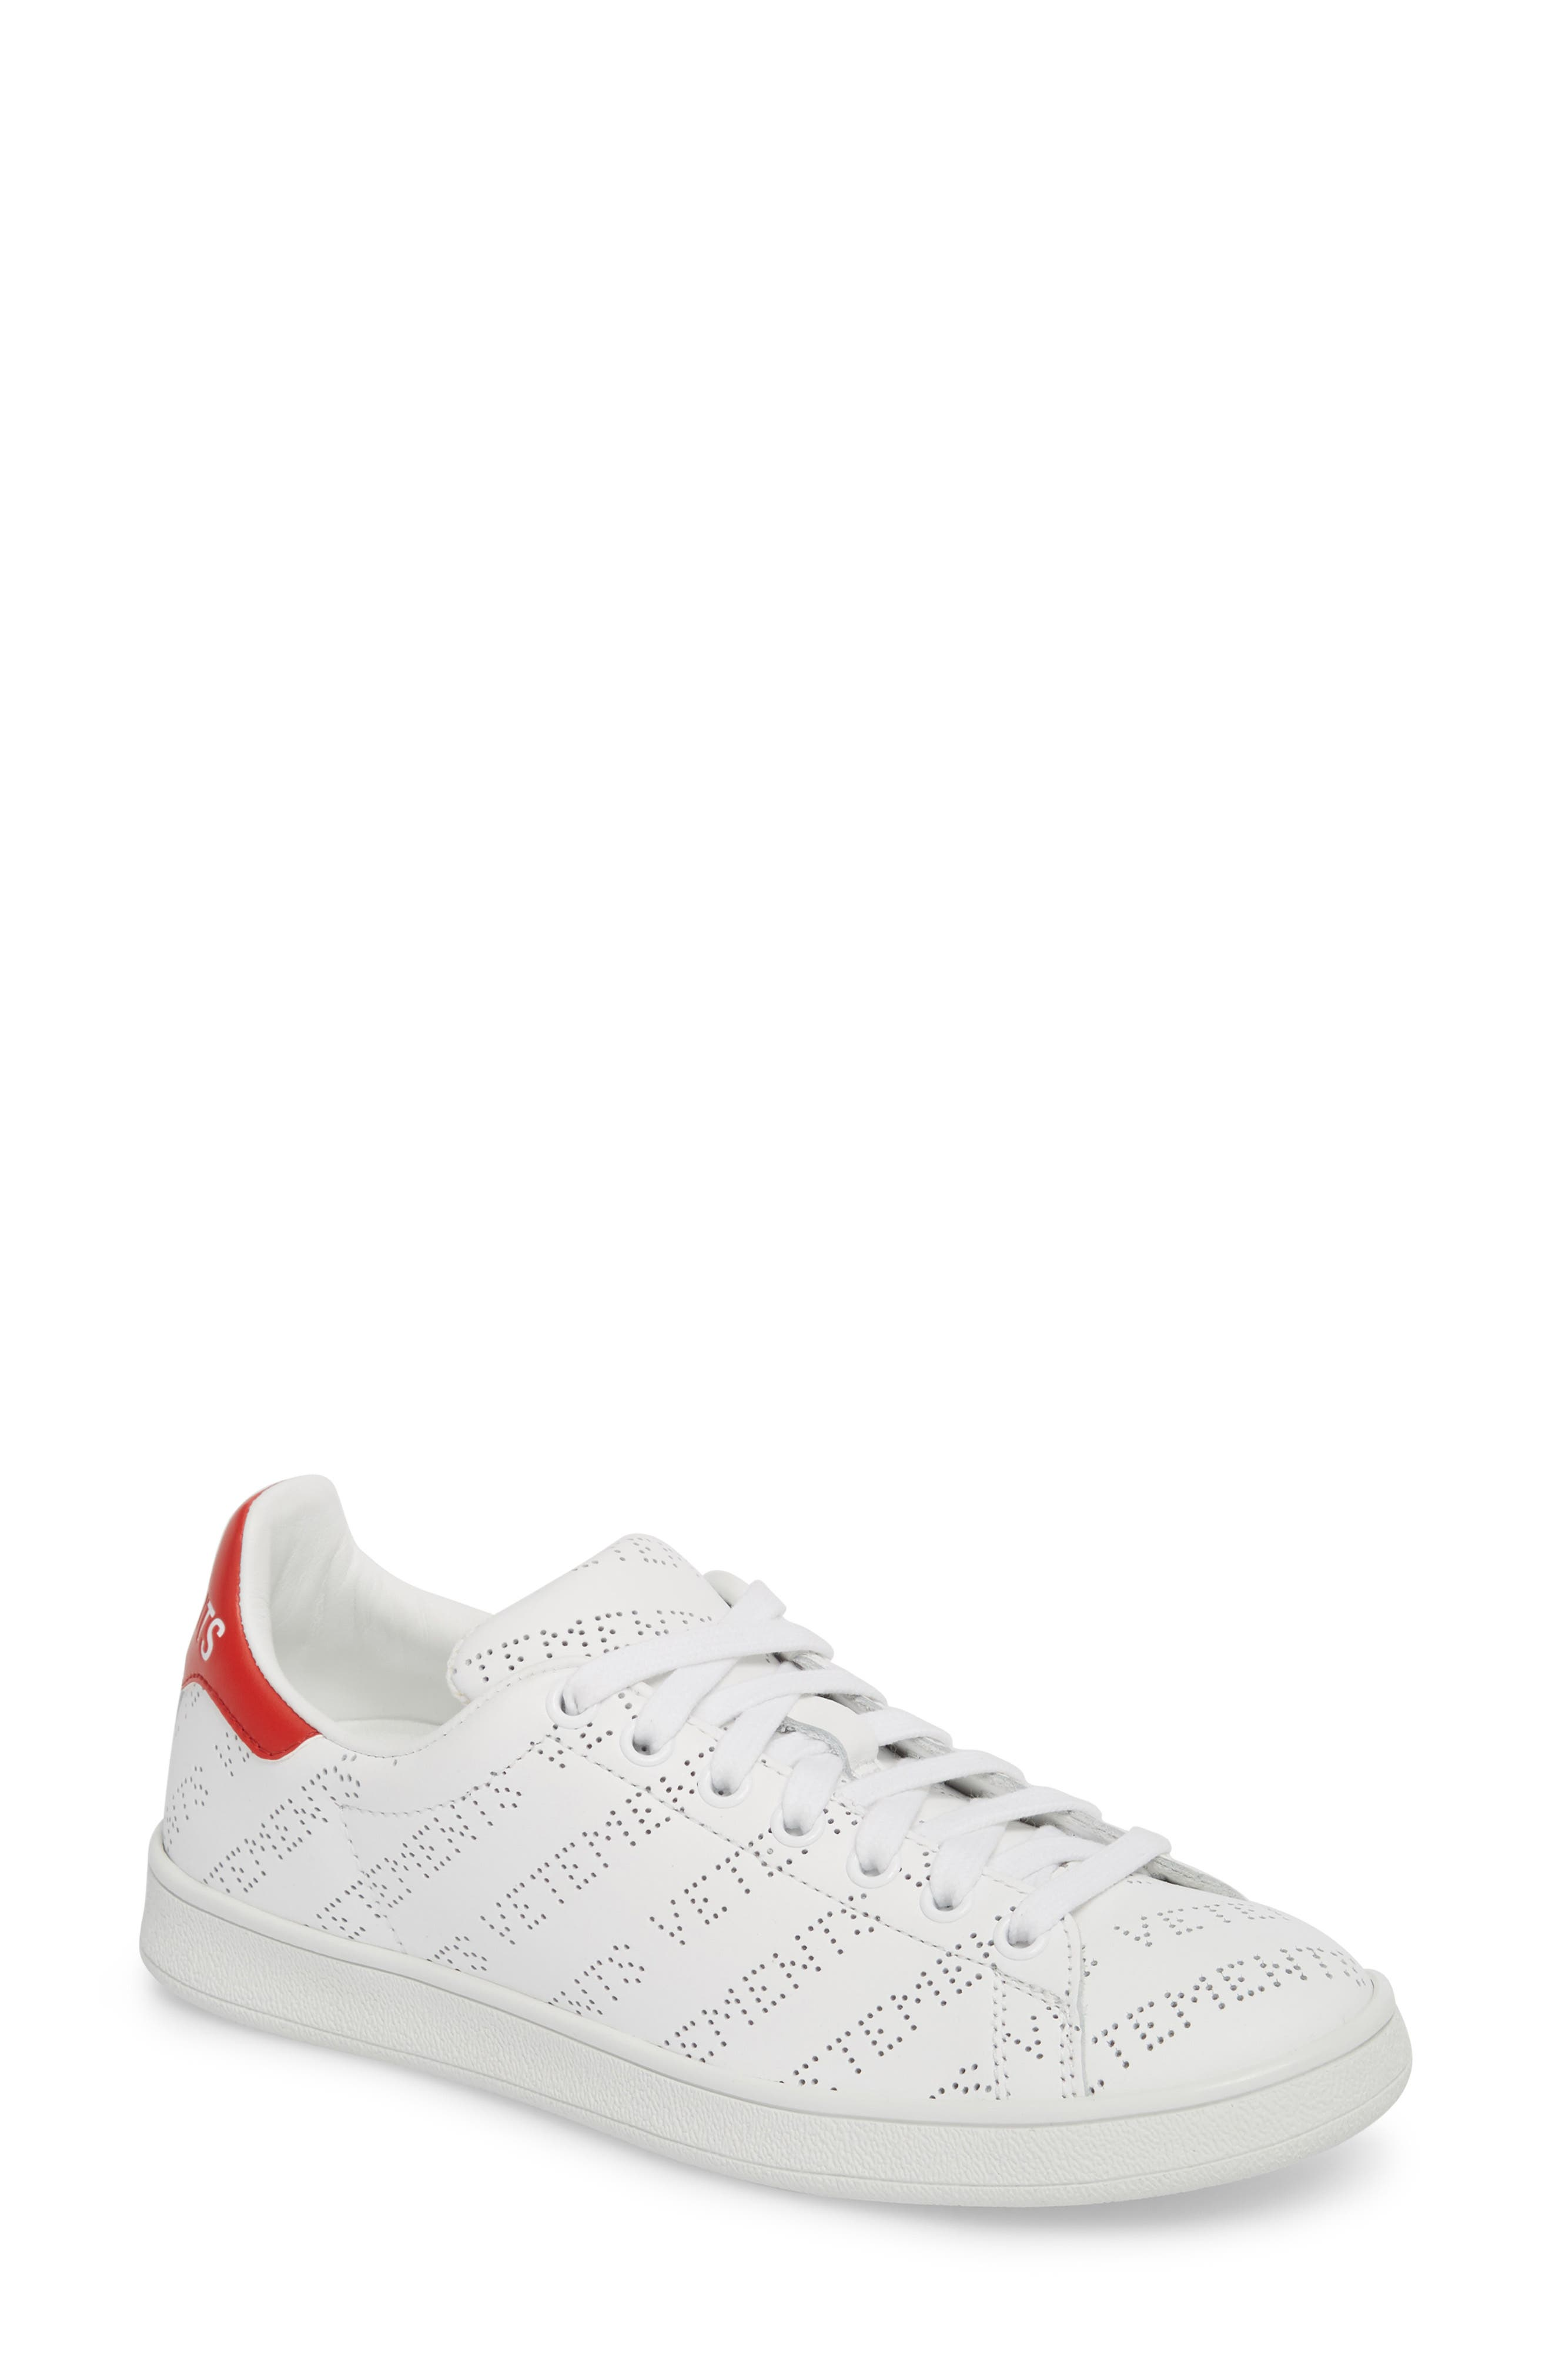 Perforated Sneaker,                             Main thumbnail 1, color,                             WHITE RED